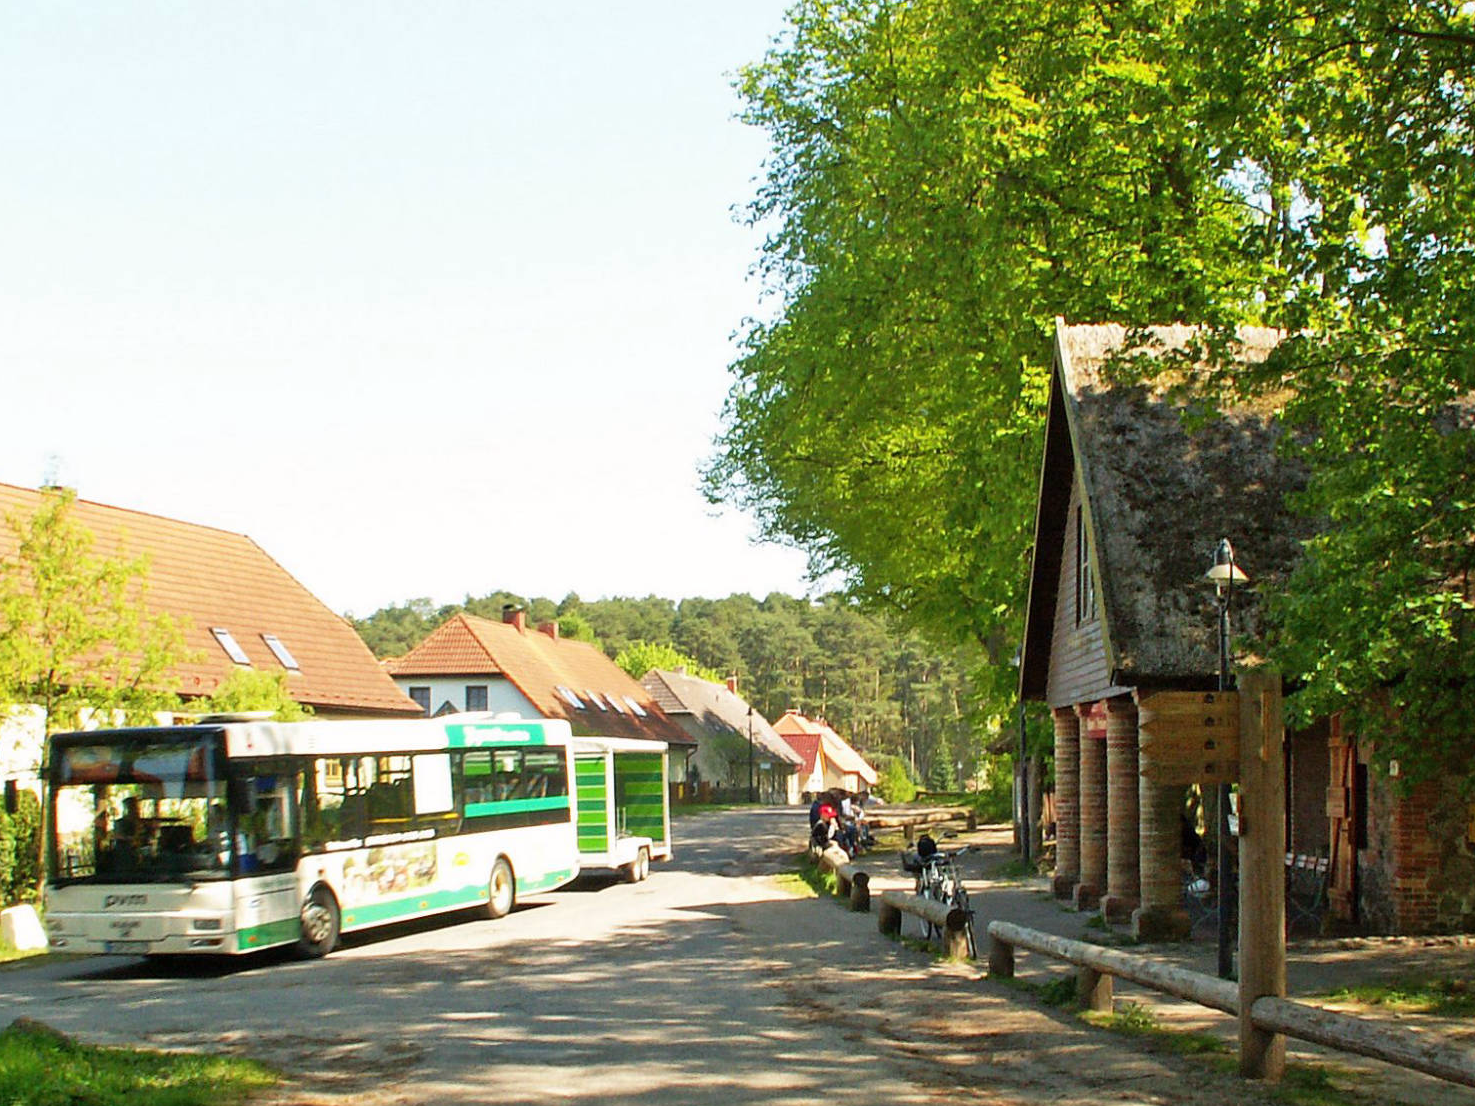 Mit dem Nationalparkticket in den Müritz-Nationalpark